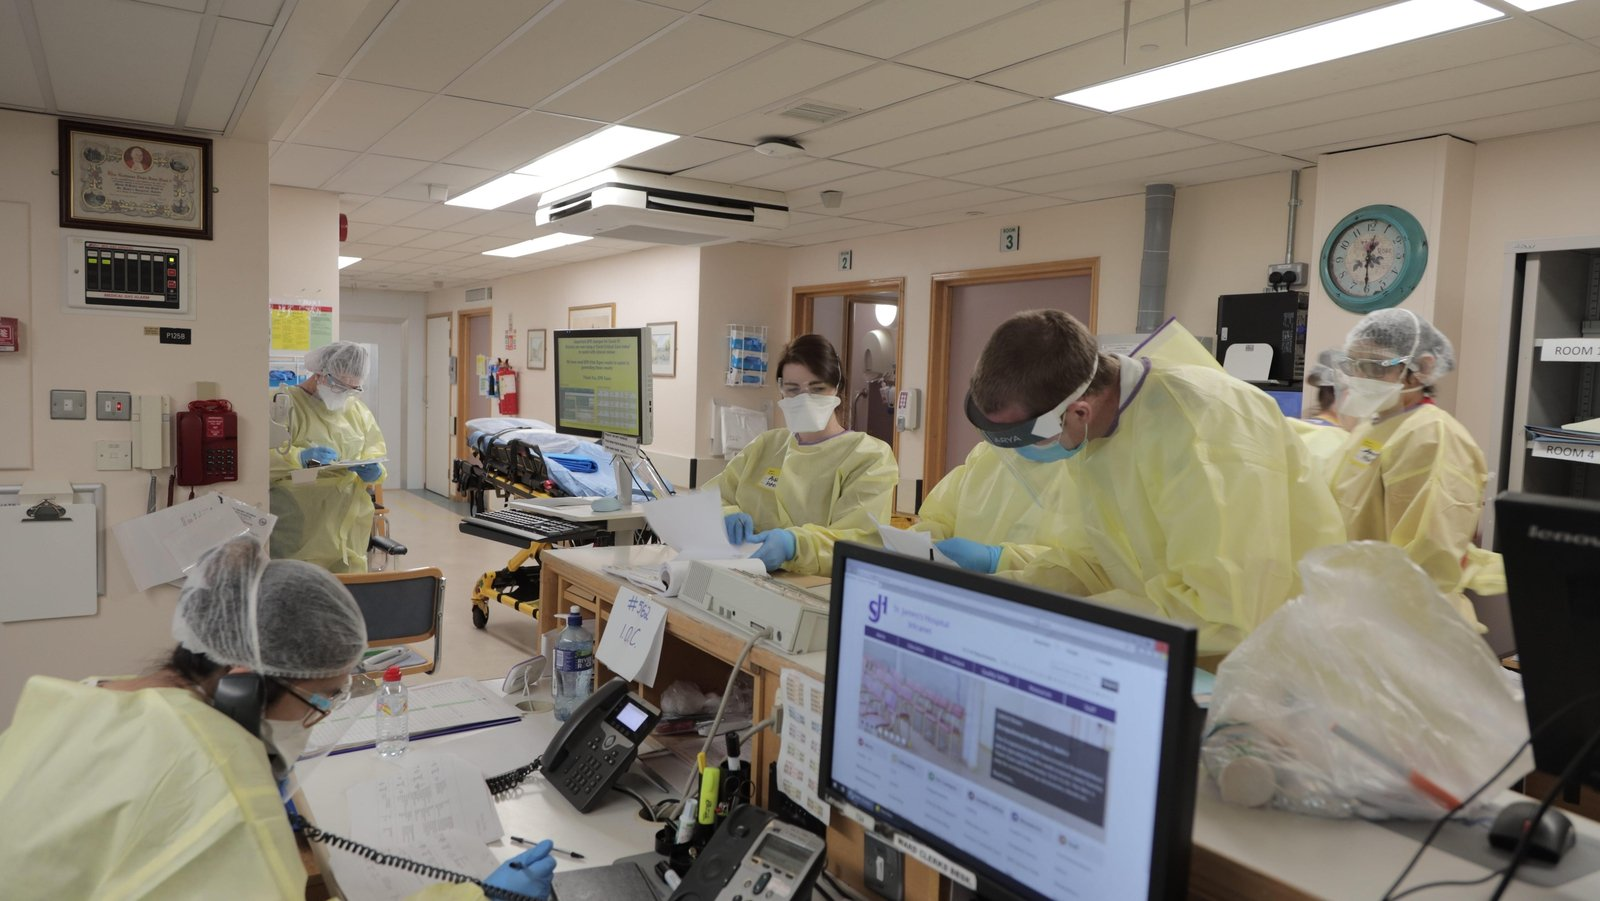 Image - Medical staff busy at work in one of the hospital's Covid positive wards